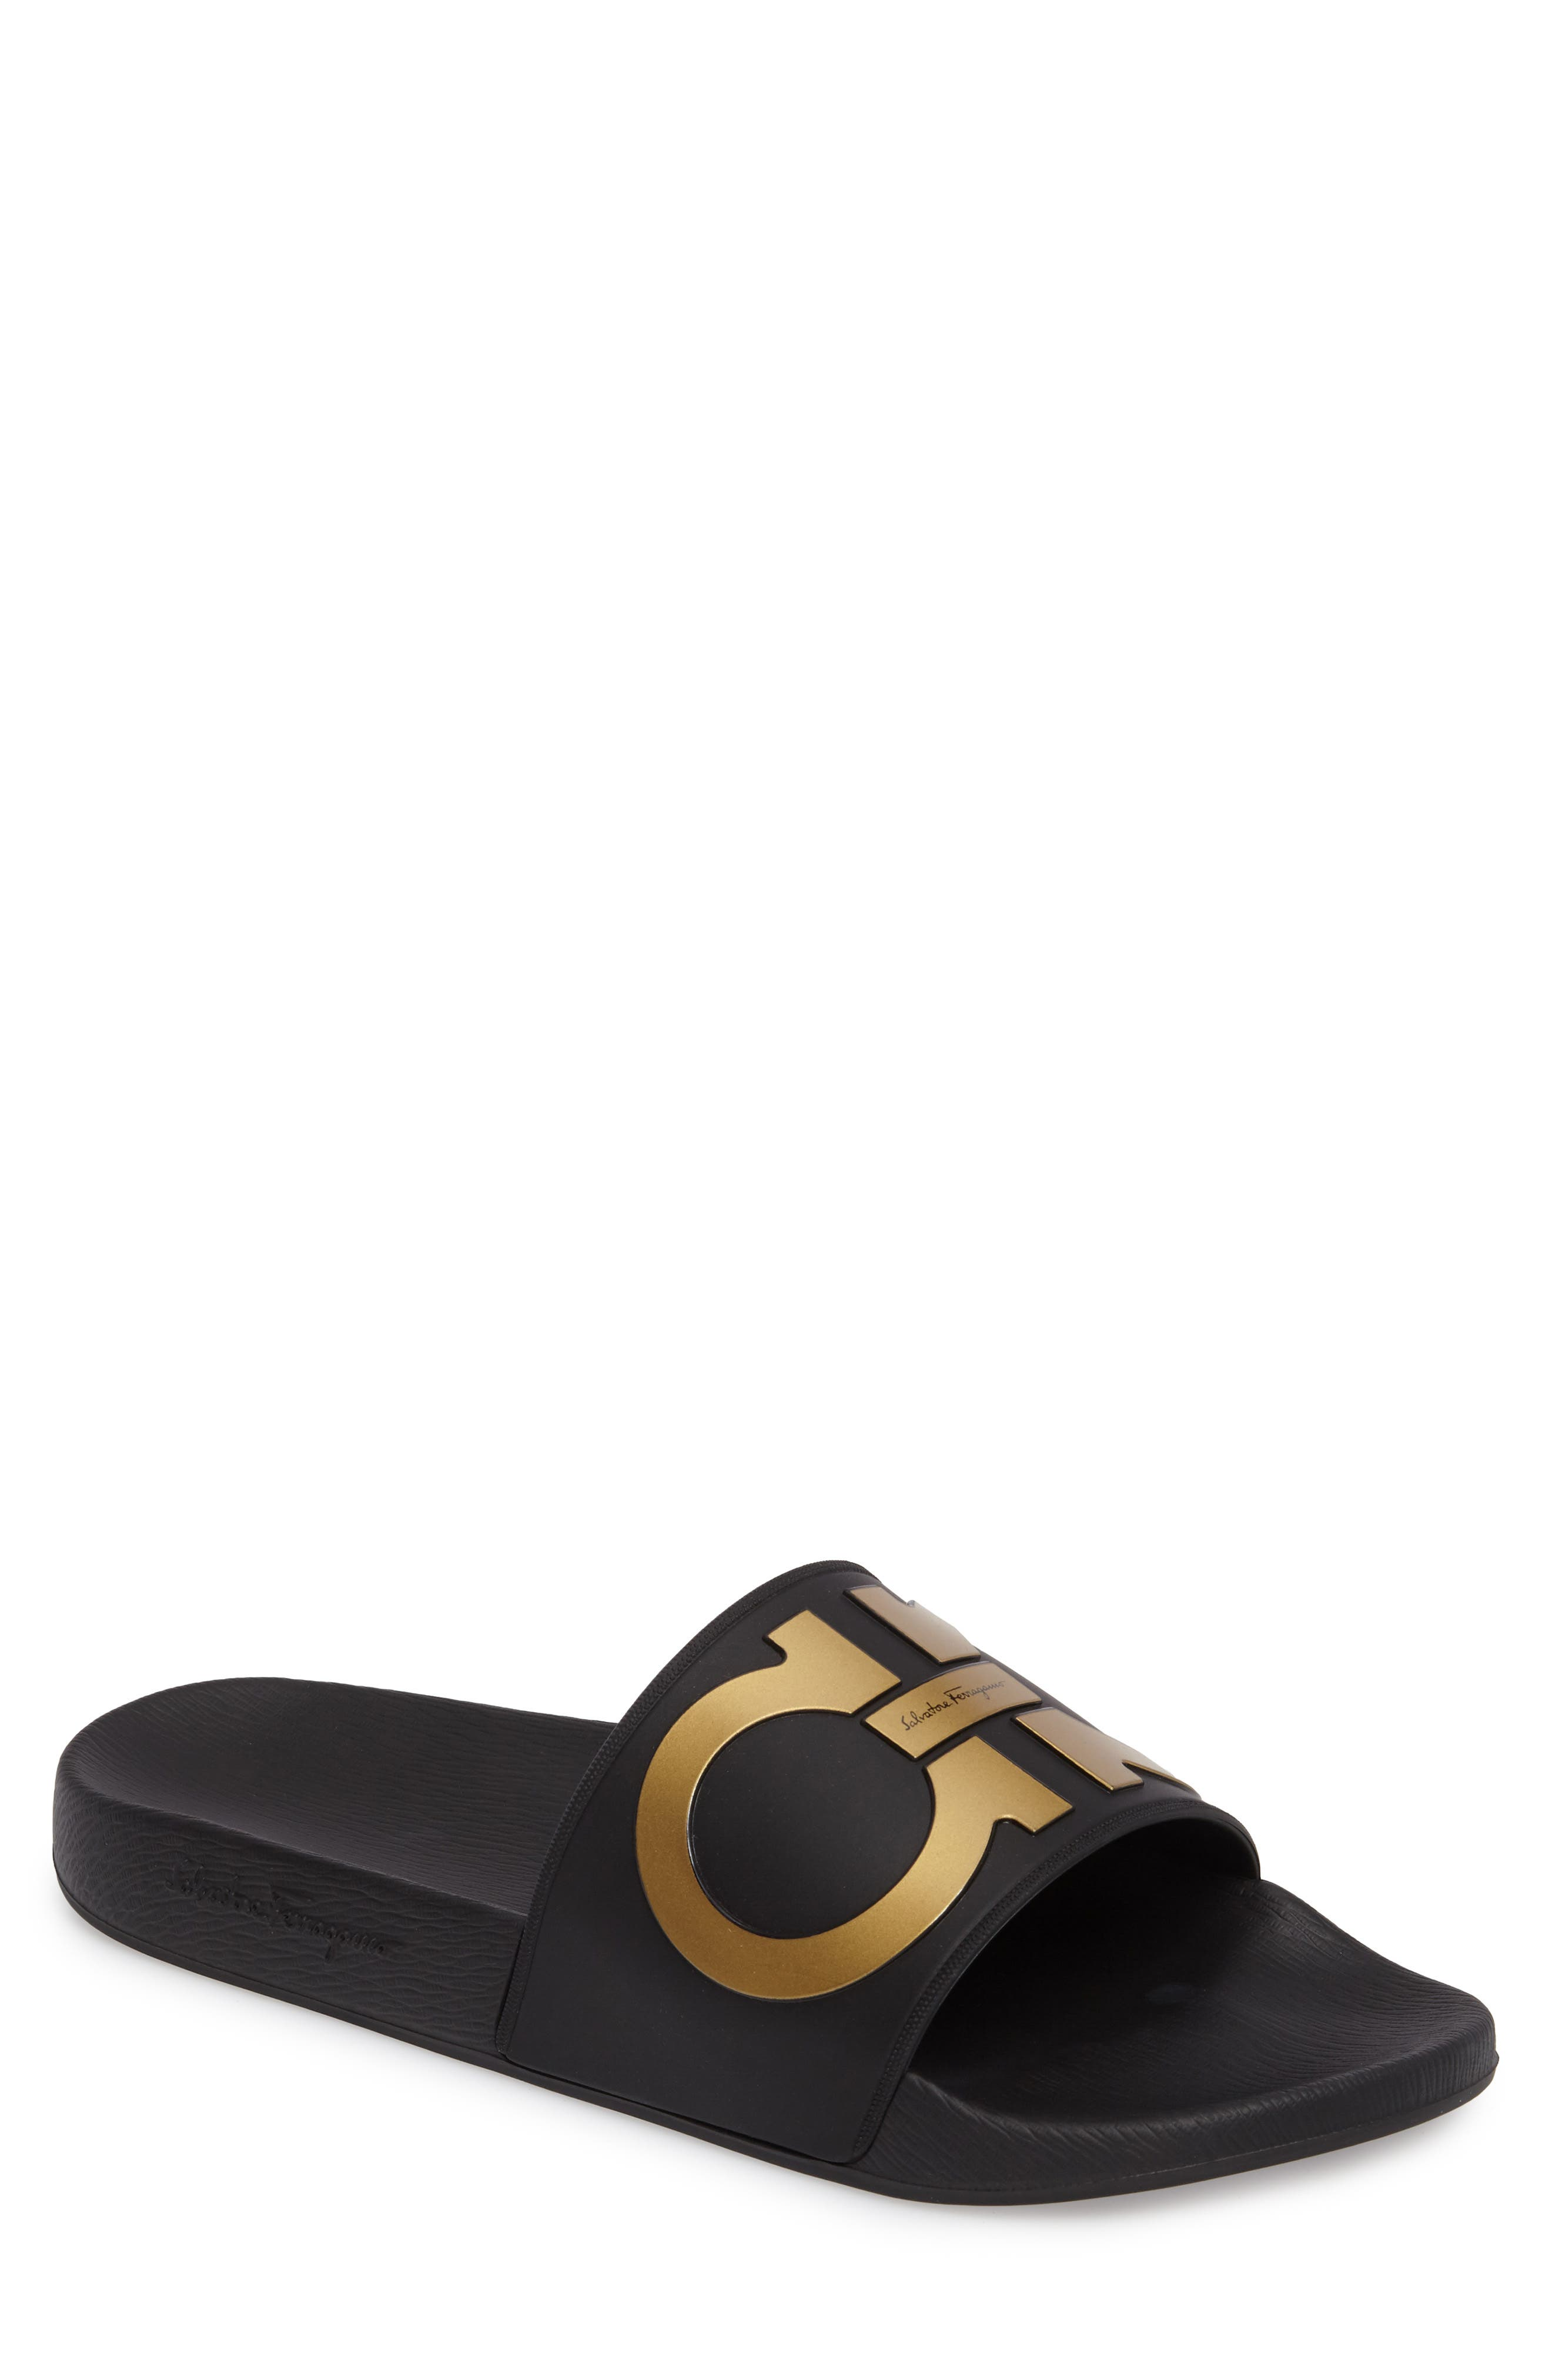 Groove 2 Slide Sandal,                         Main,                         color, BLACK/GOLD